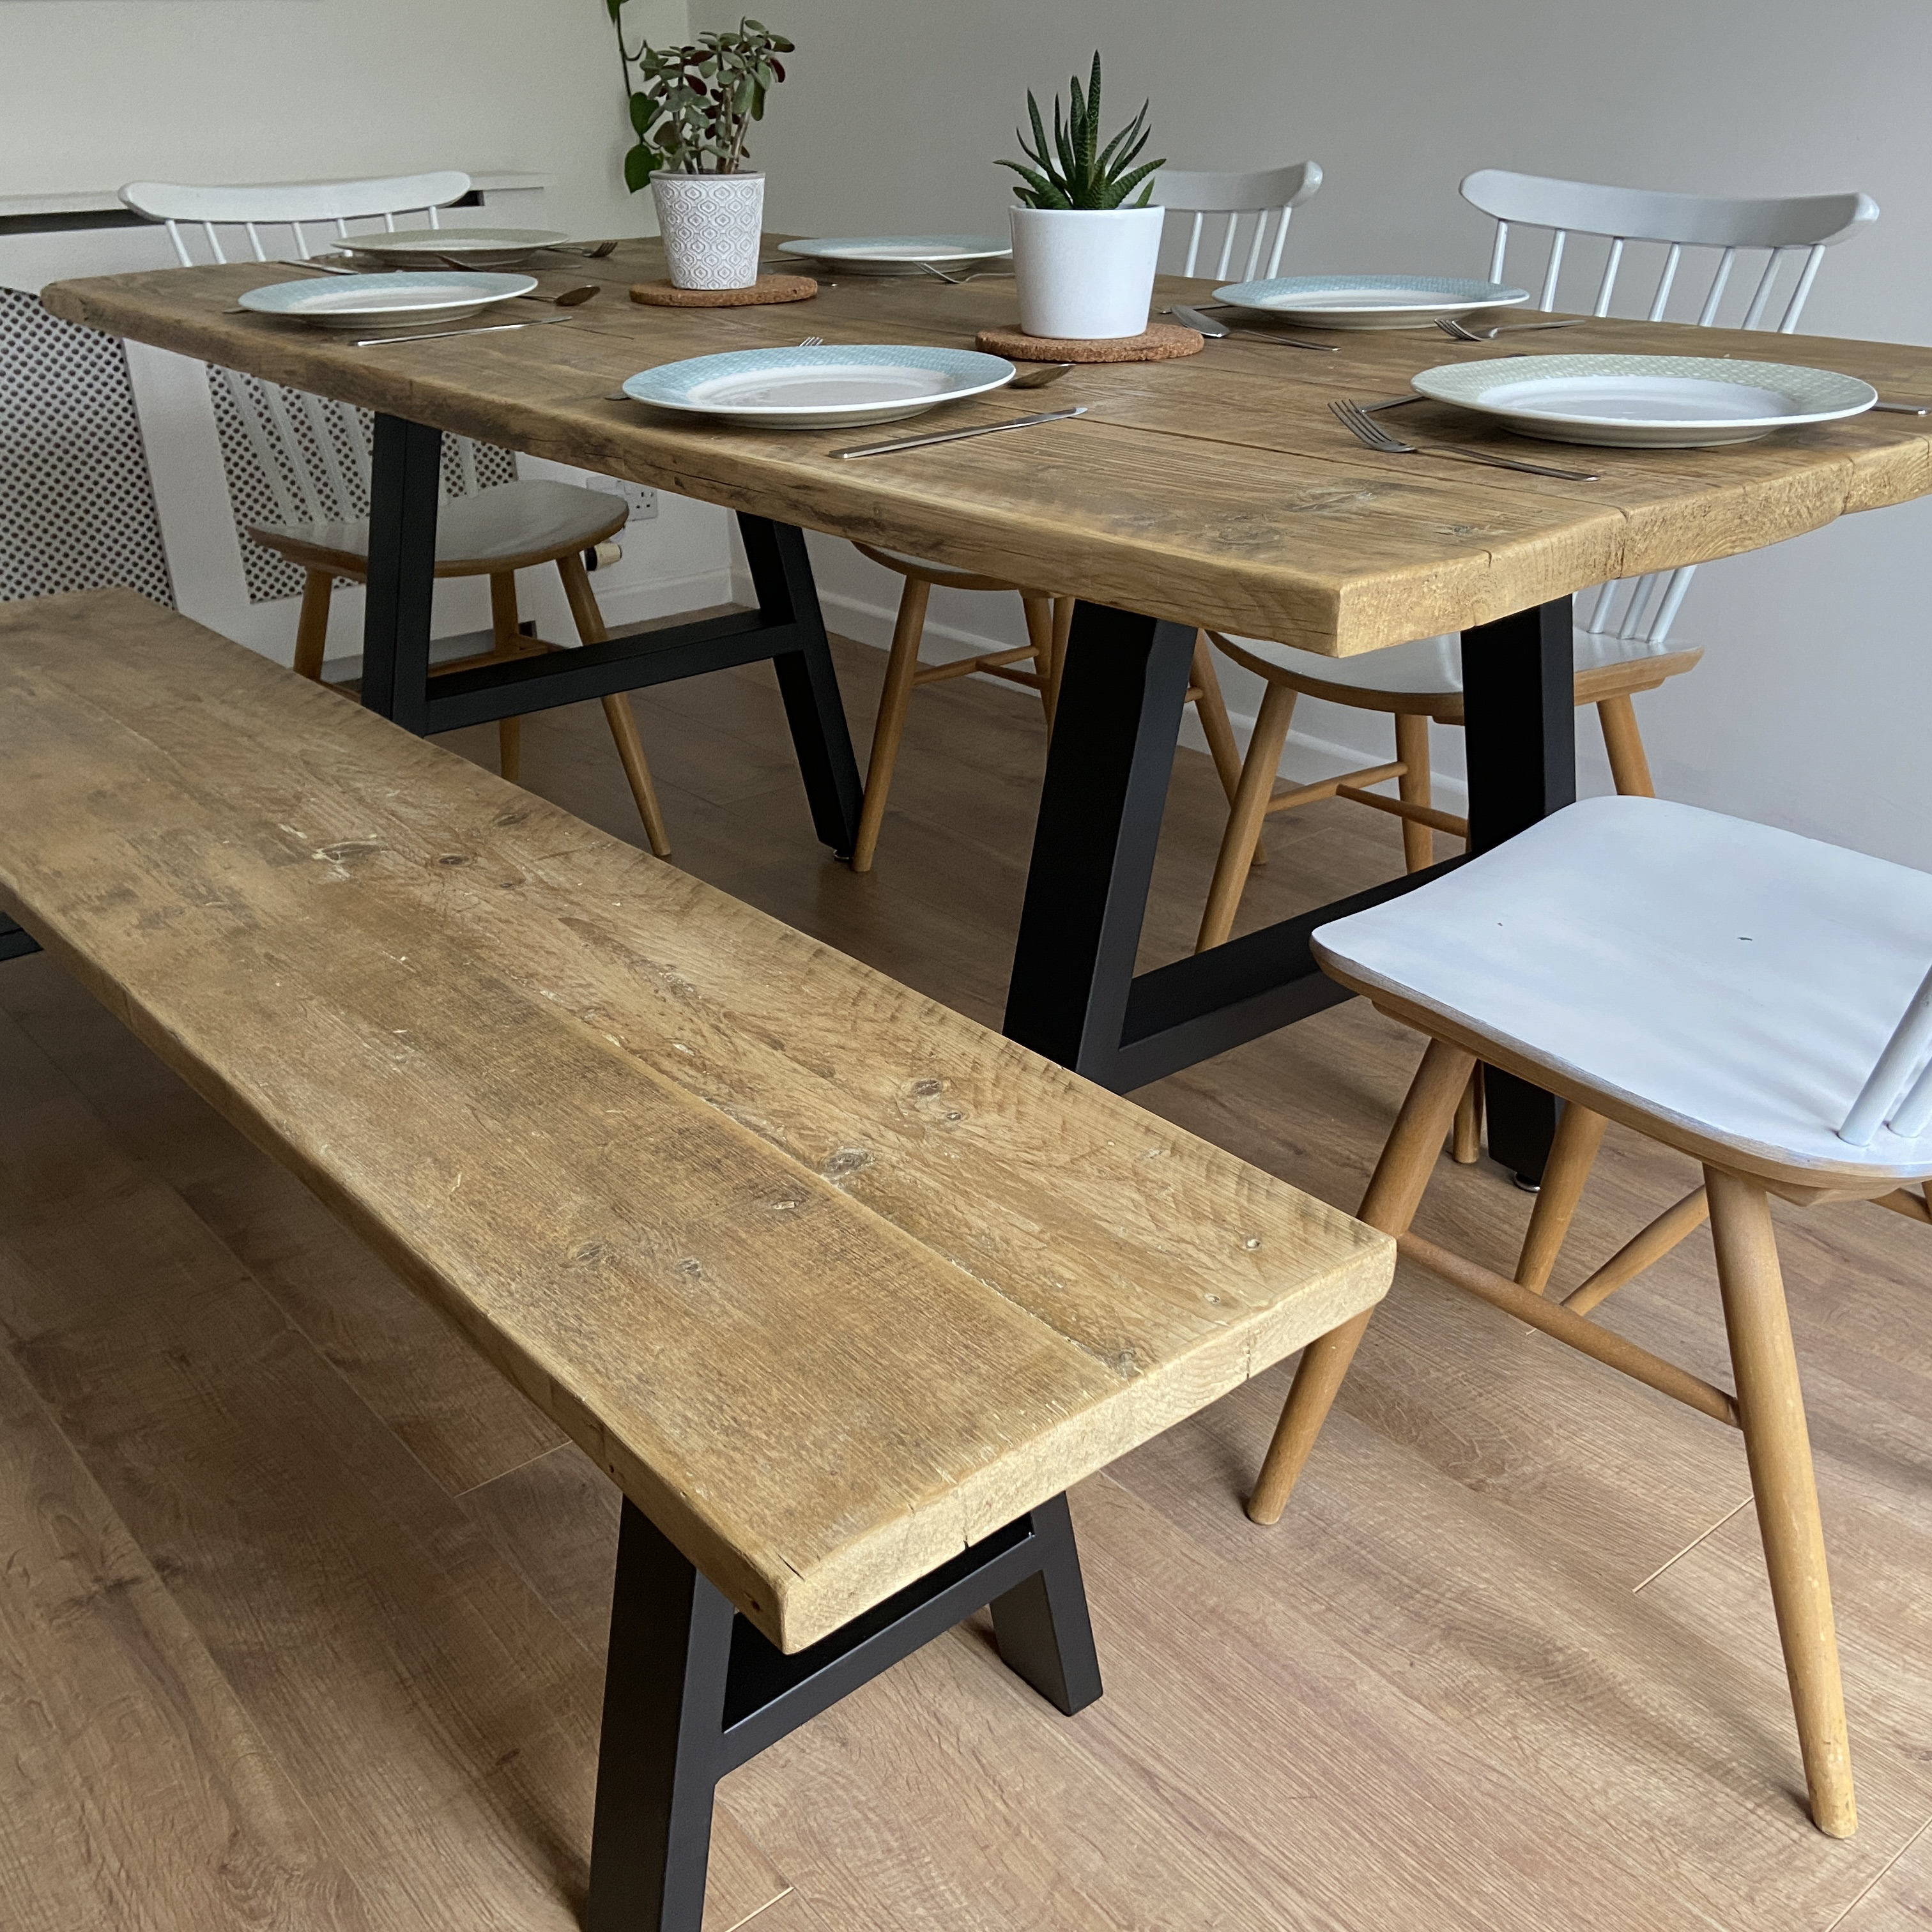 Building A Rustic Industrial Dining Table Wood Create